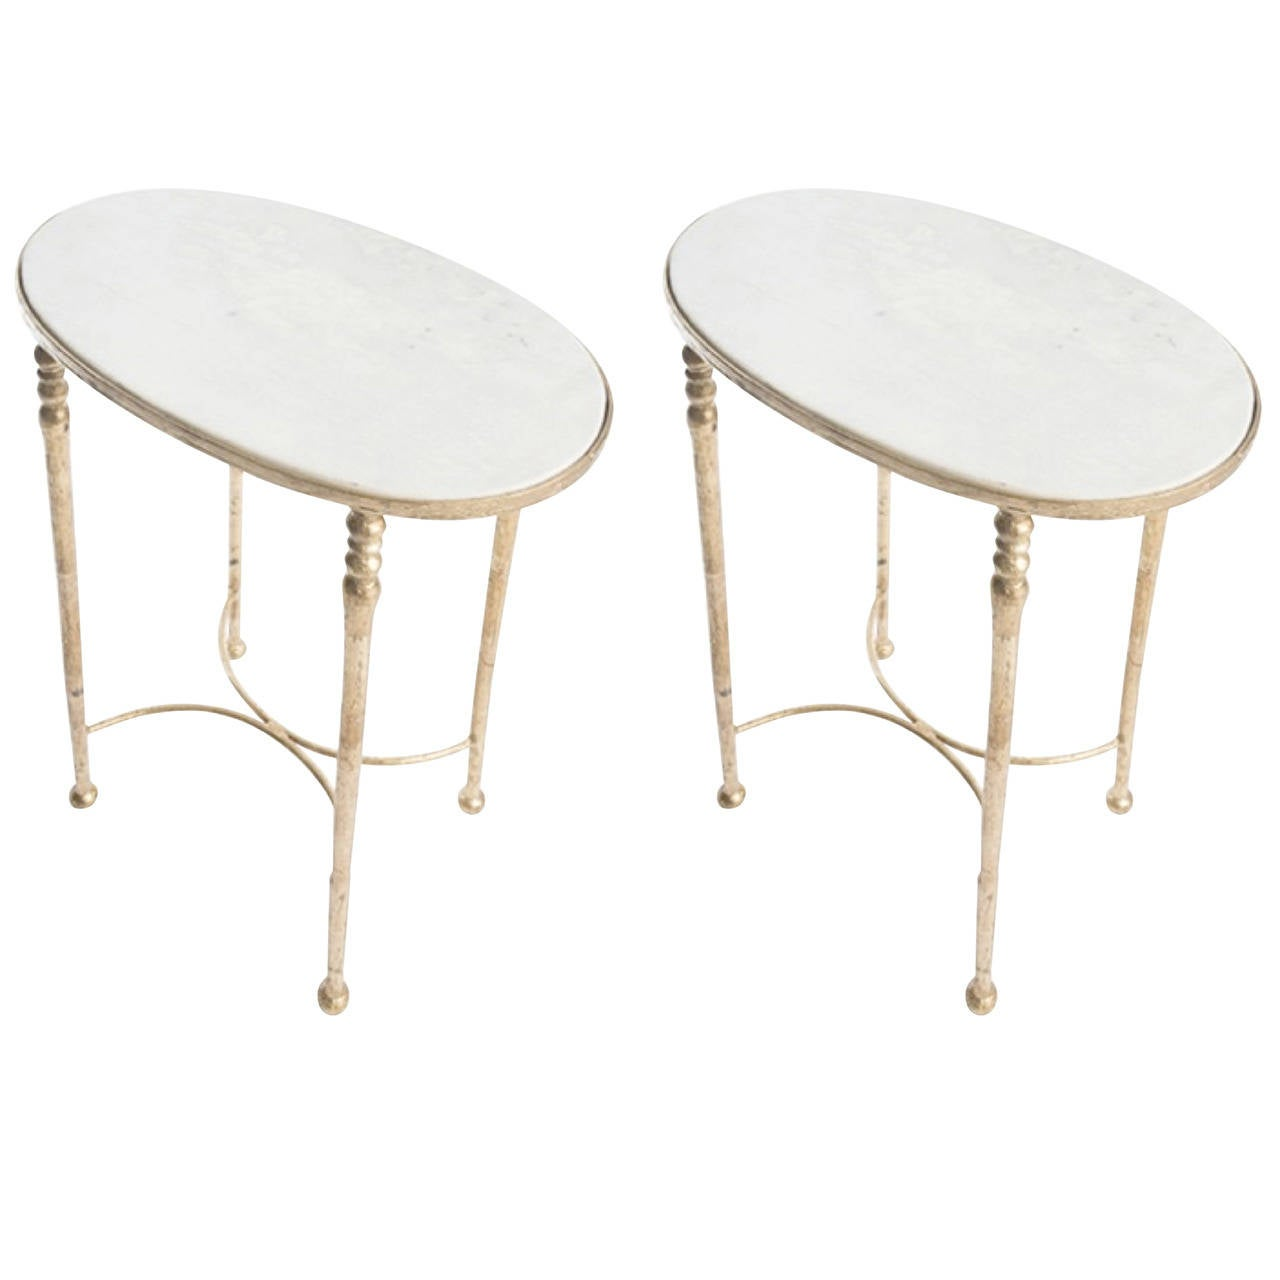 Two Gilt Metal and Marble Drinks Tables in the Style of Giacometti